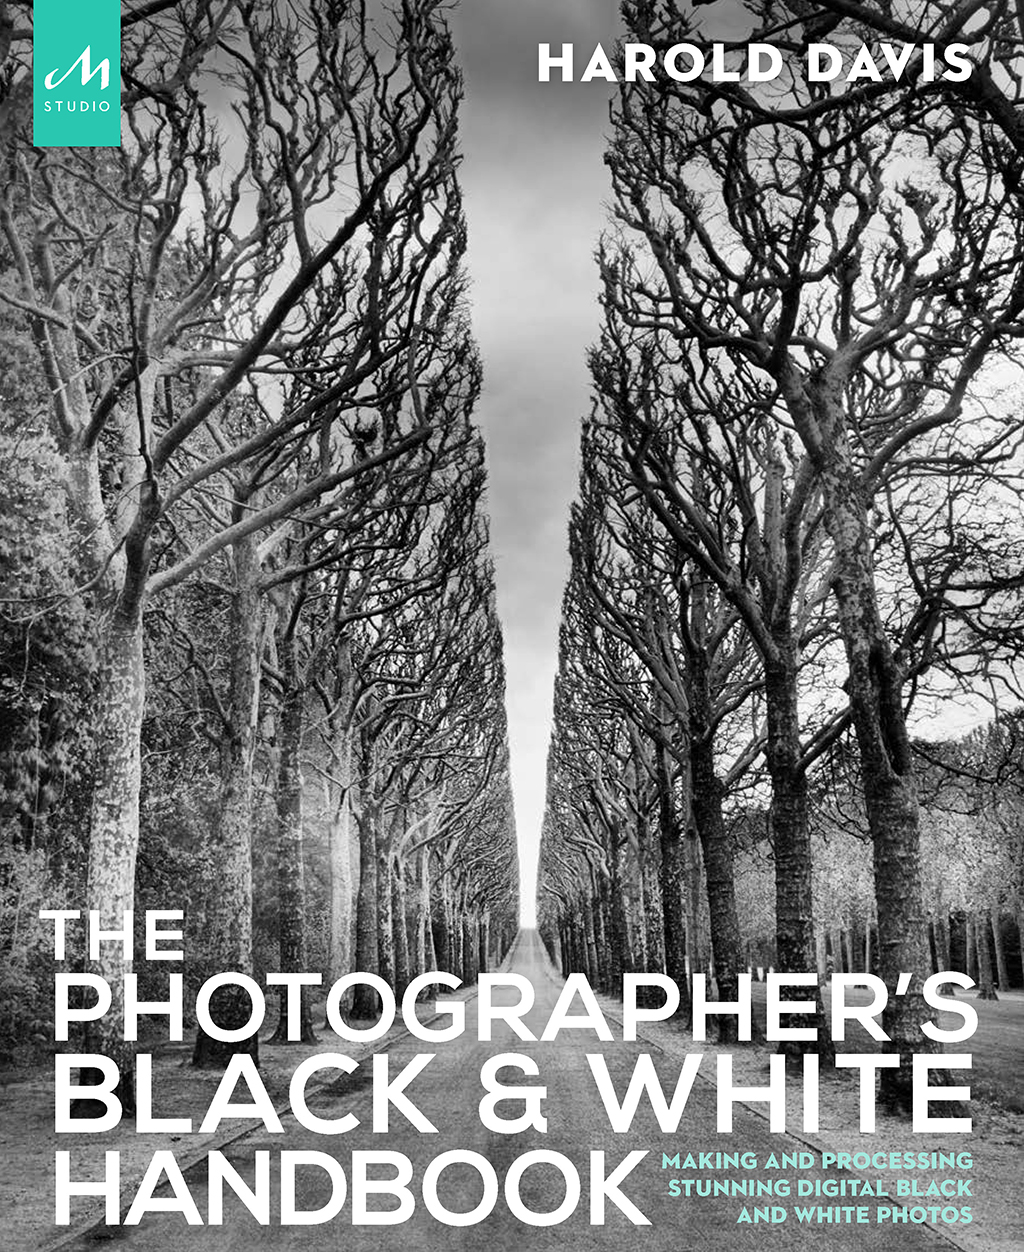 The Photographer's Black & White Handbook by Harold Davis is an example of a technical black-and-white photography book that teaches photographers how to create black-and-white photos.